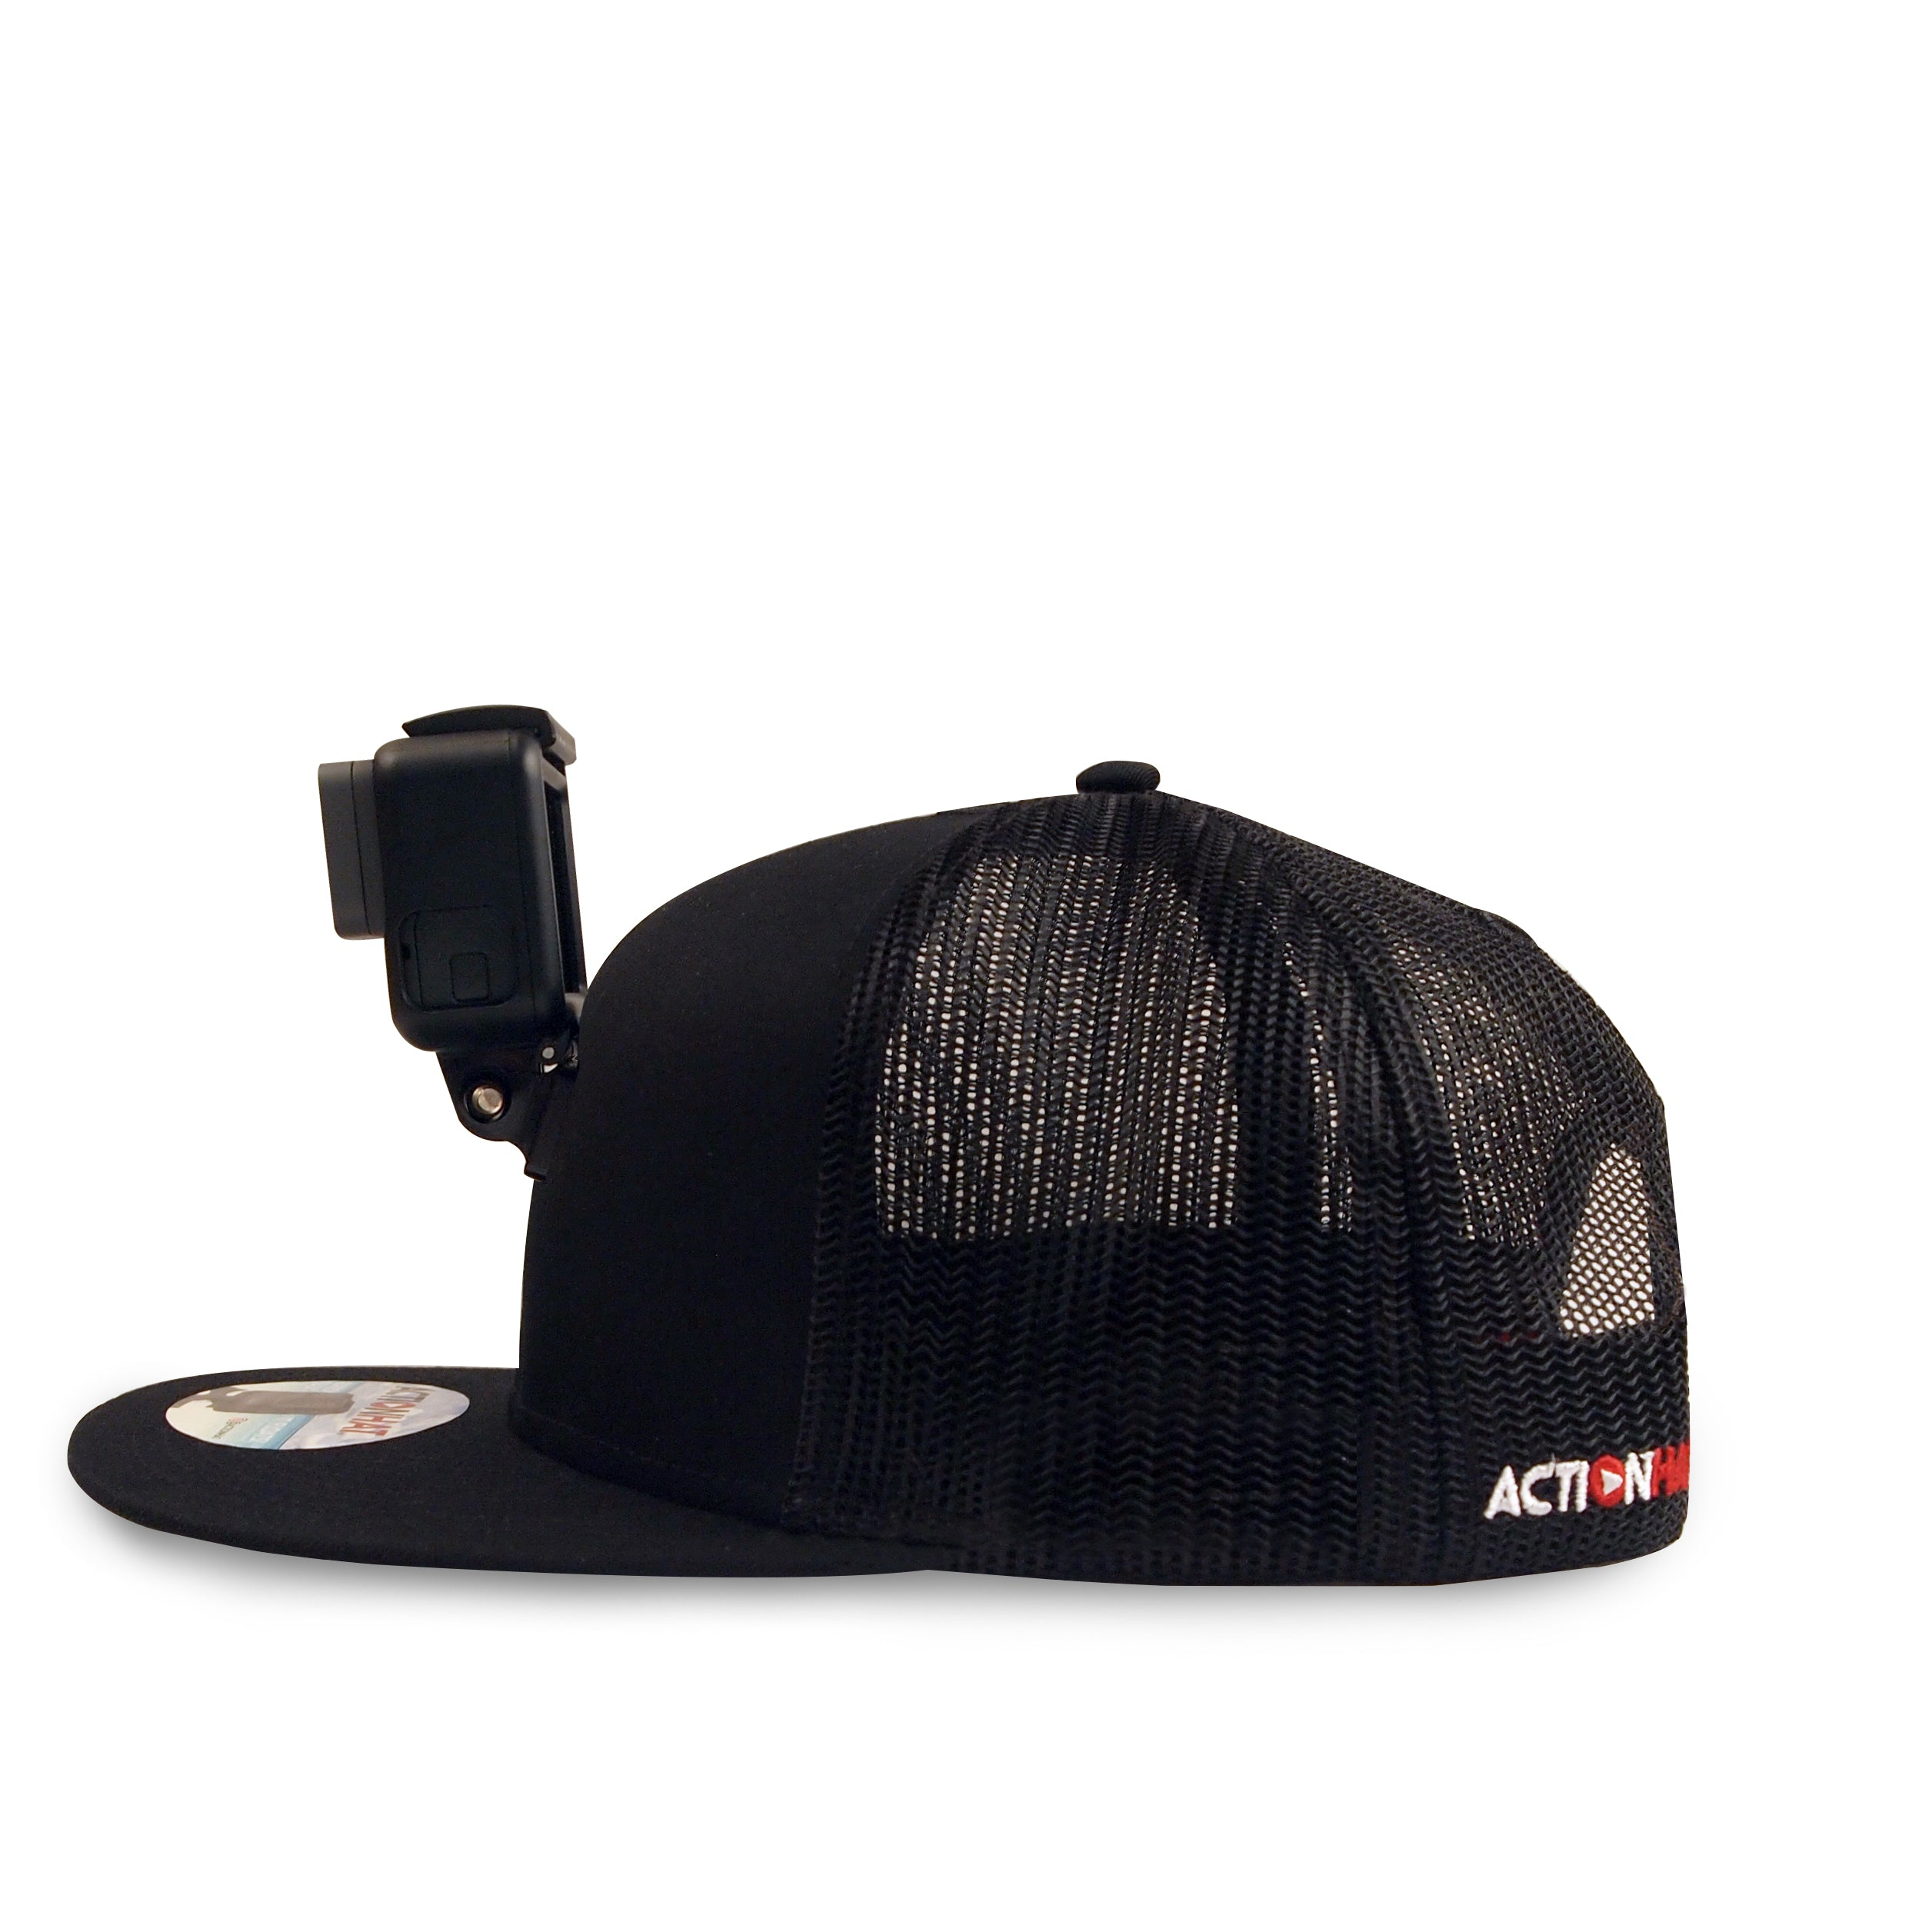 ActionHat Mesh: Black Curve Bill - Hat Mount for GoPro